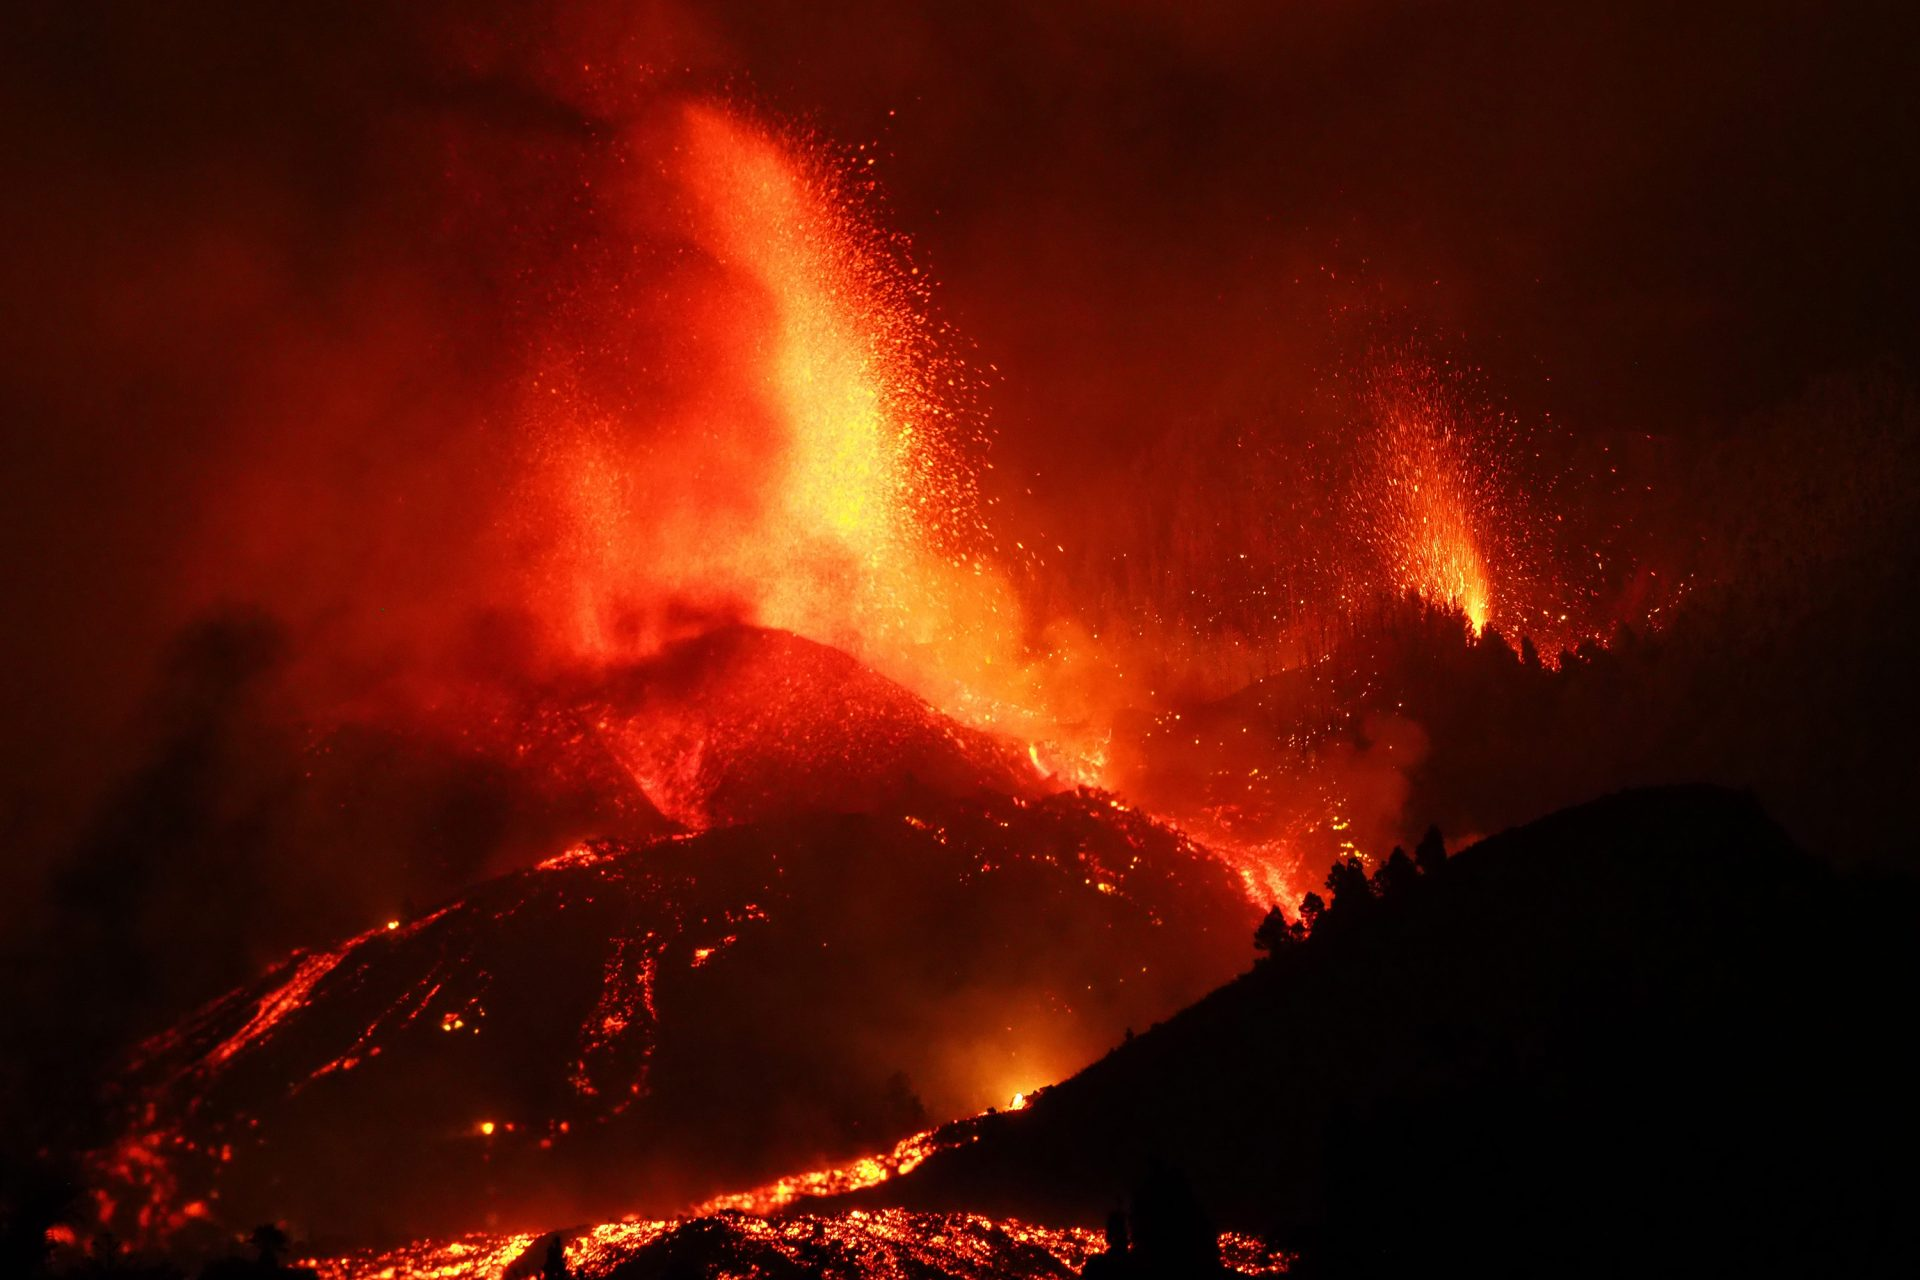 New, stunning images of the volcano eruption in Spain